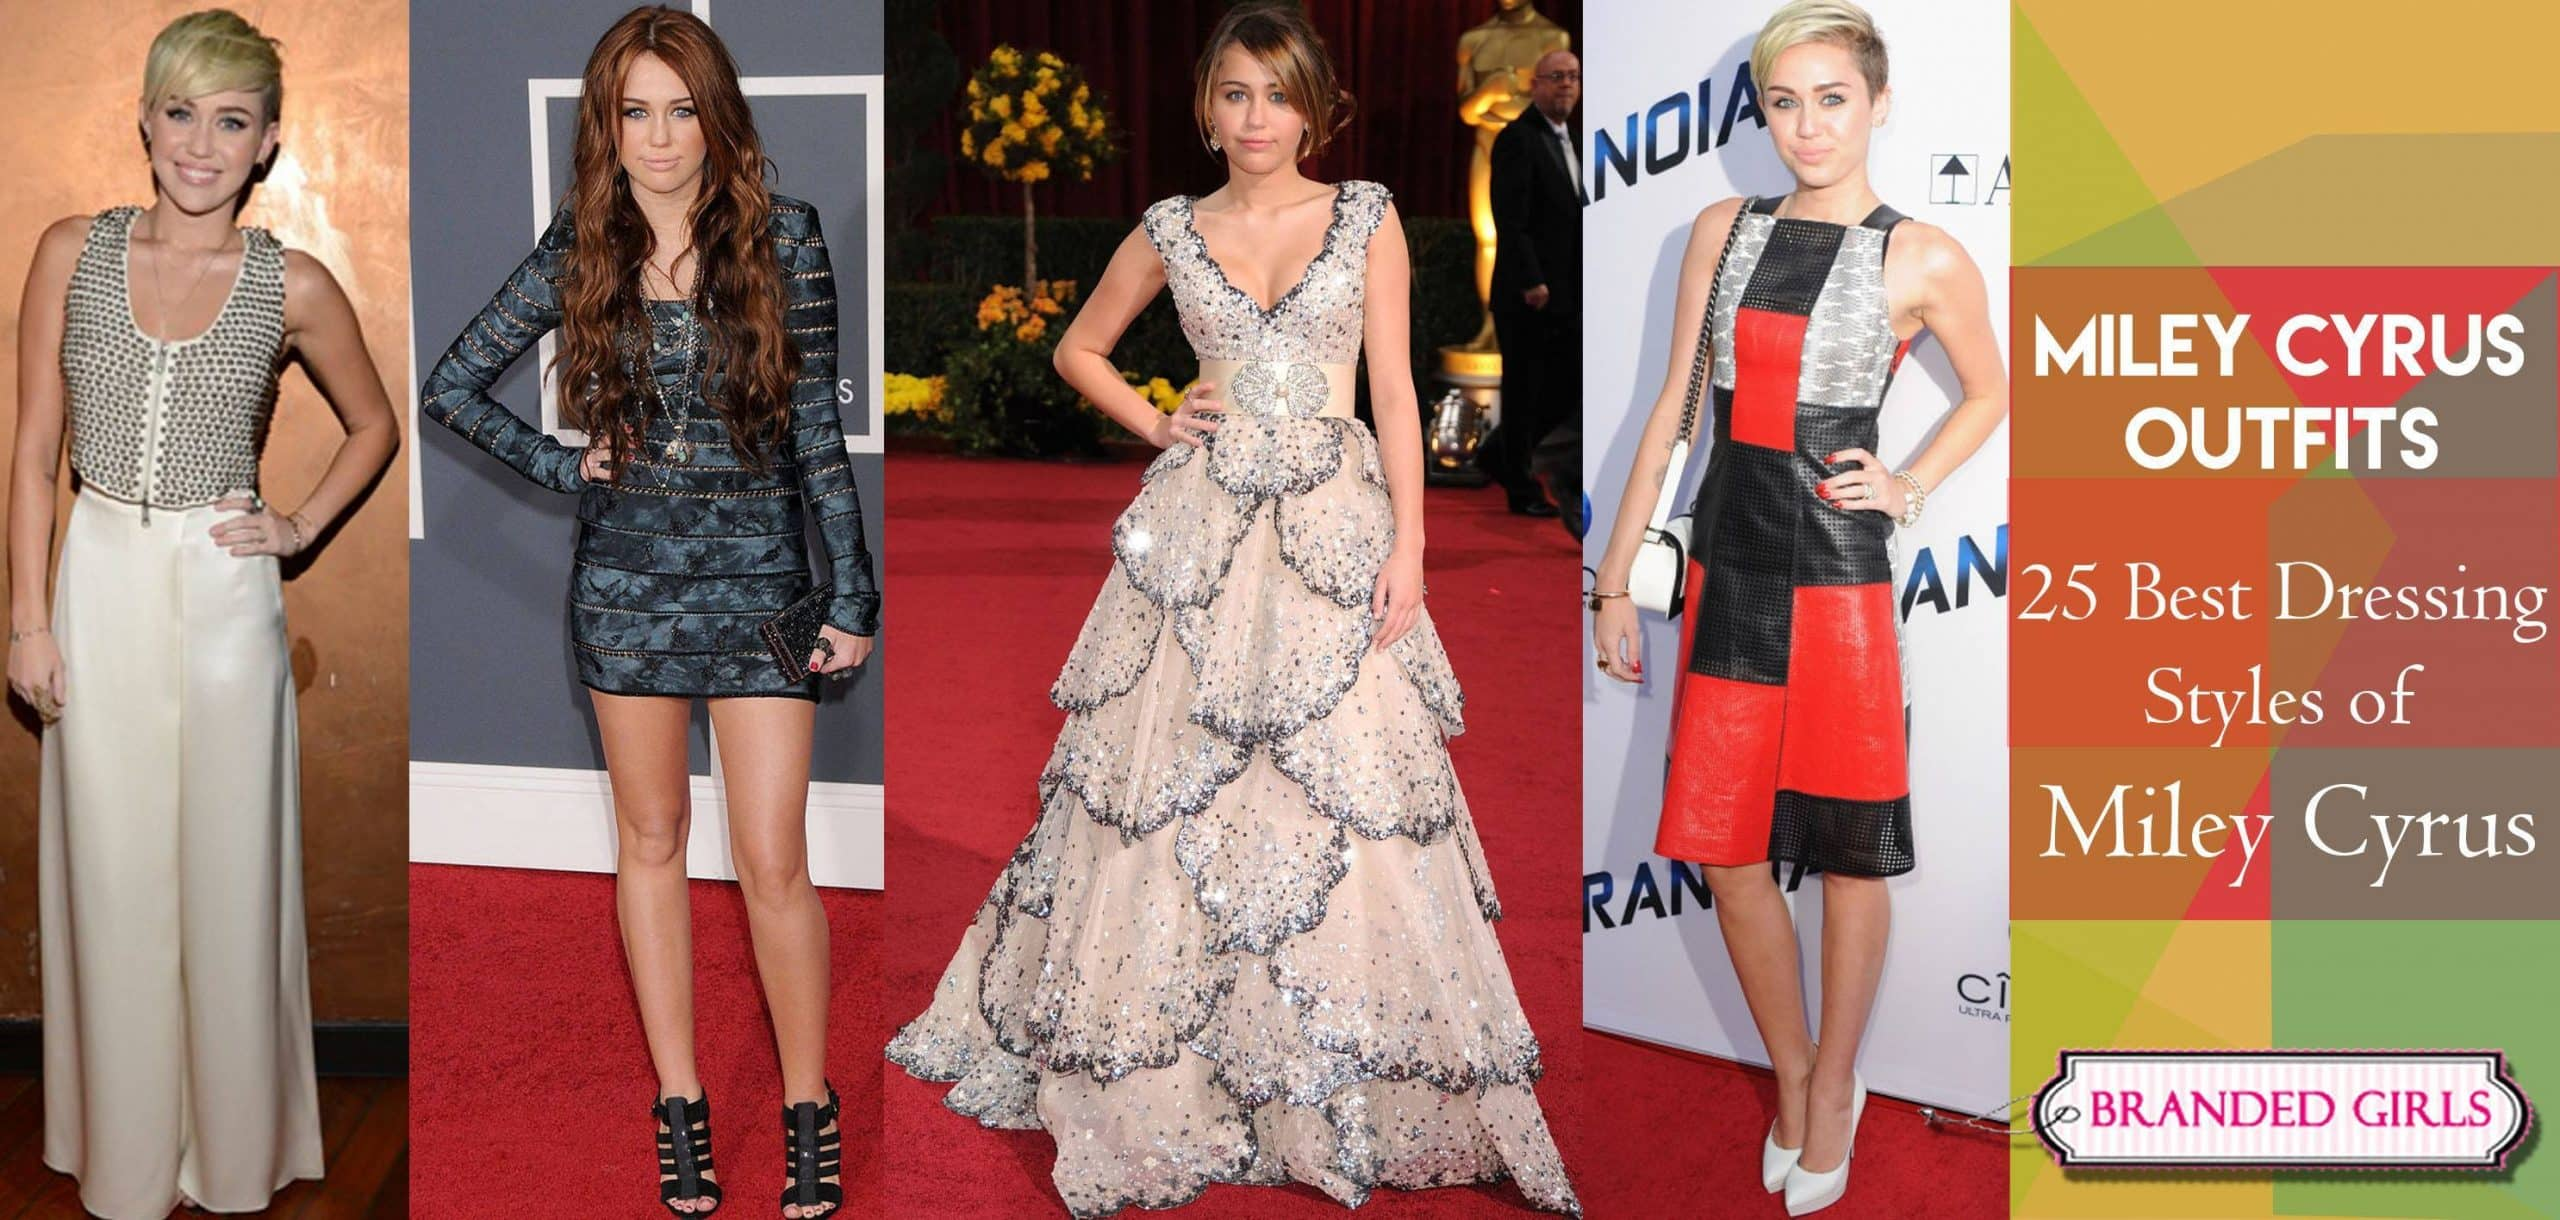 miley cyrus outfits you'll love